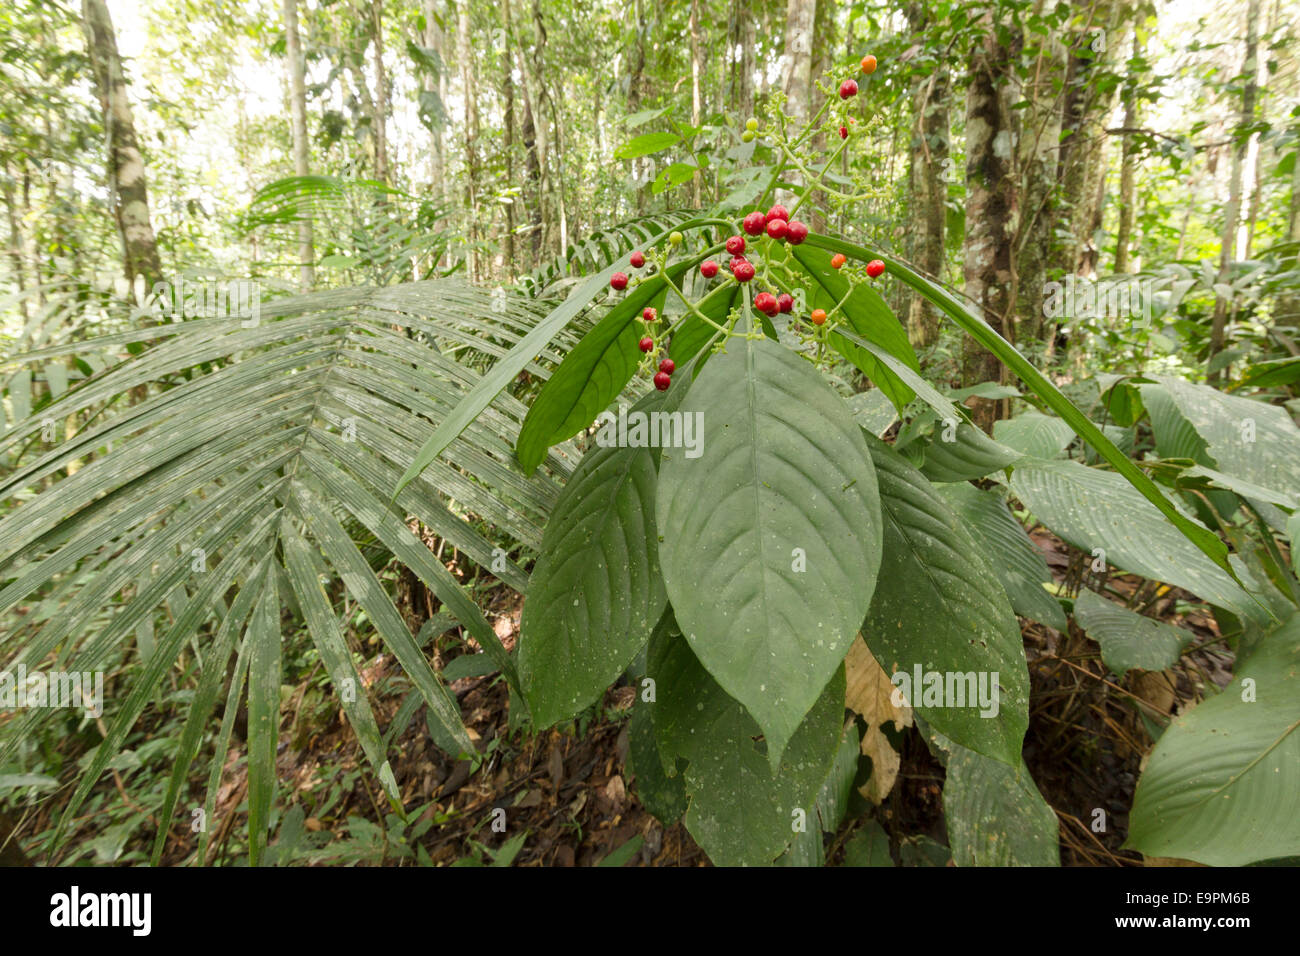 Understory shrub with ripe red berries in tropical rainforest in the Ecuadorian Amazon - Stock Image